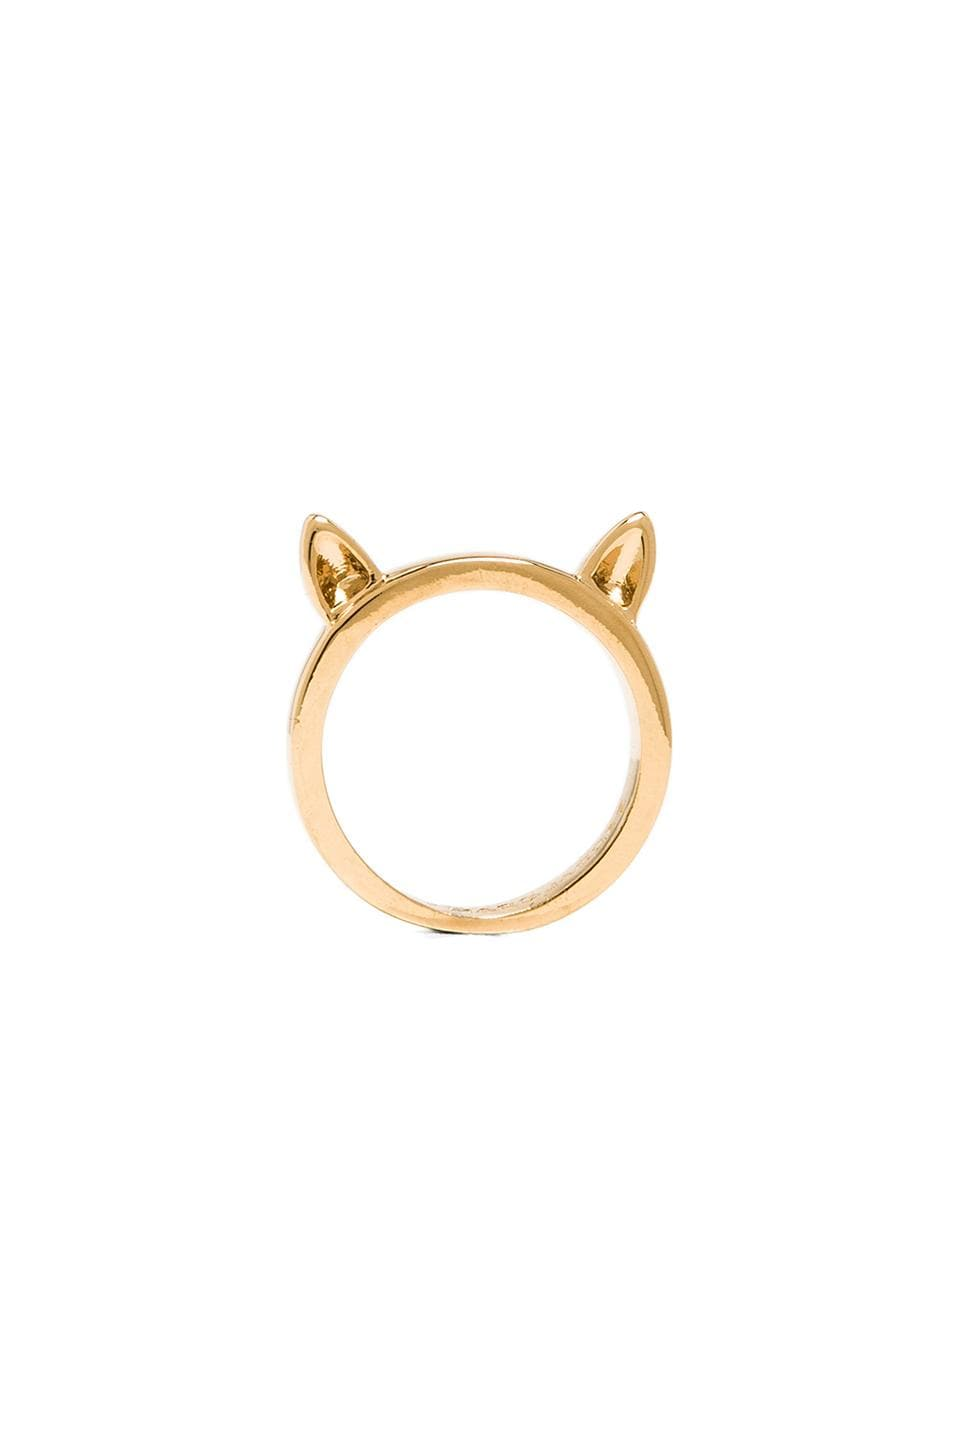 Marc by Marc Jacobs Octi-Bolts Cat Ears Ring in Oro